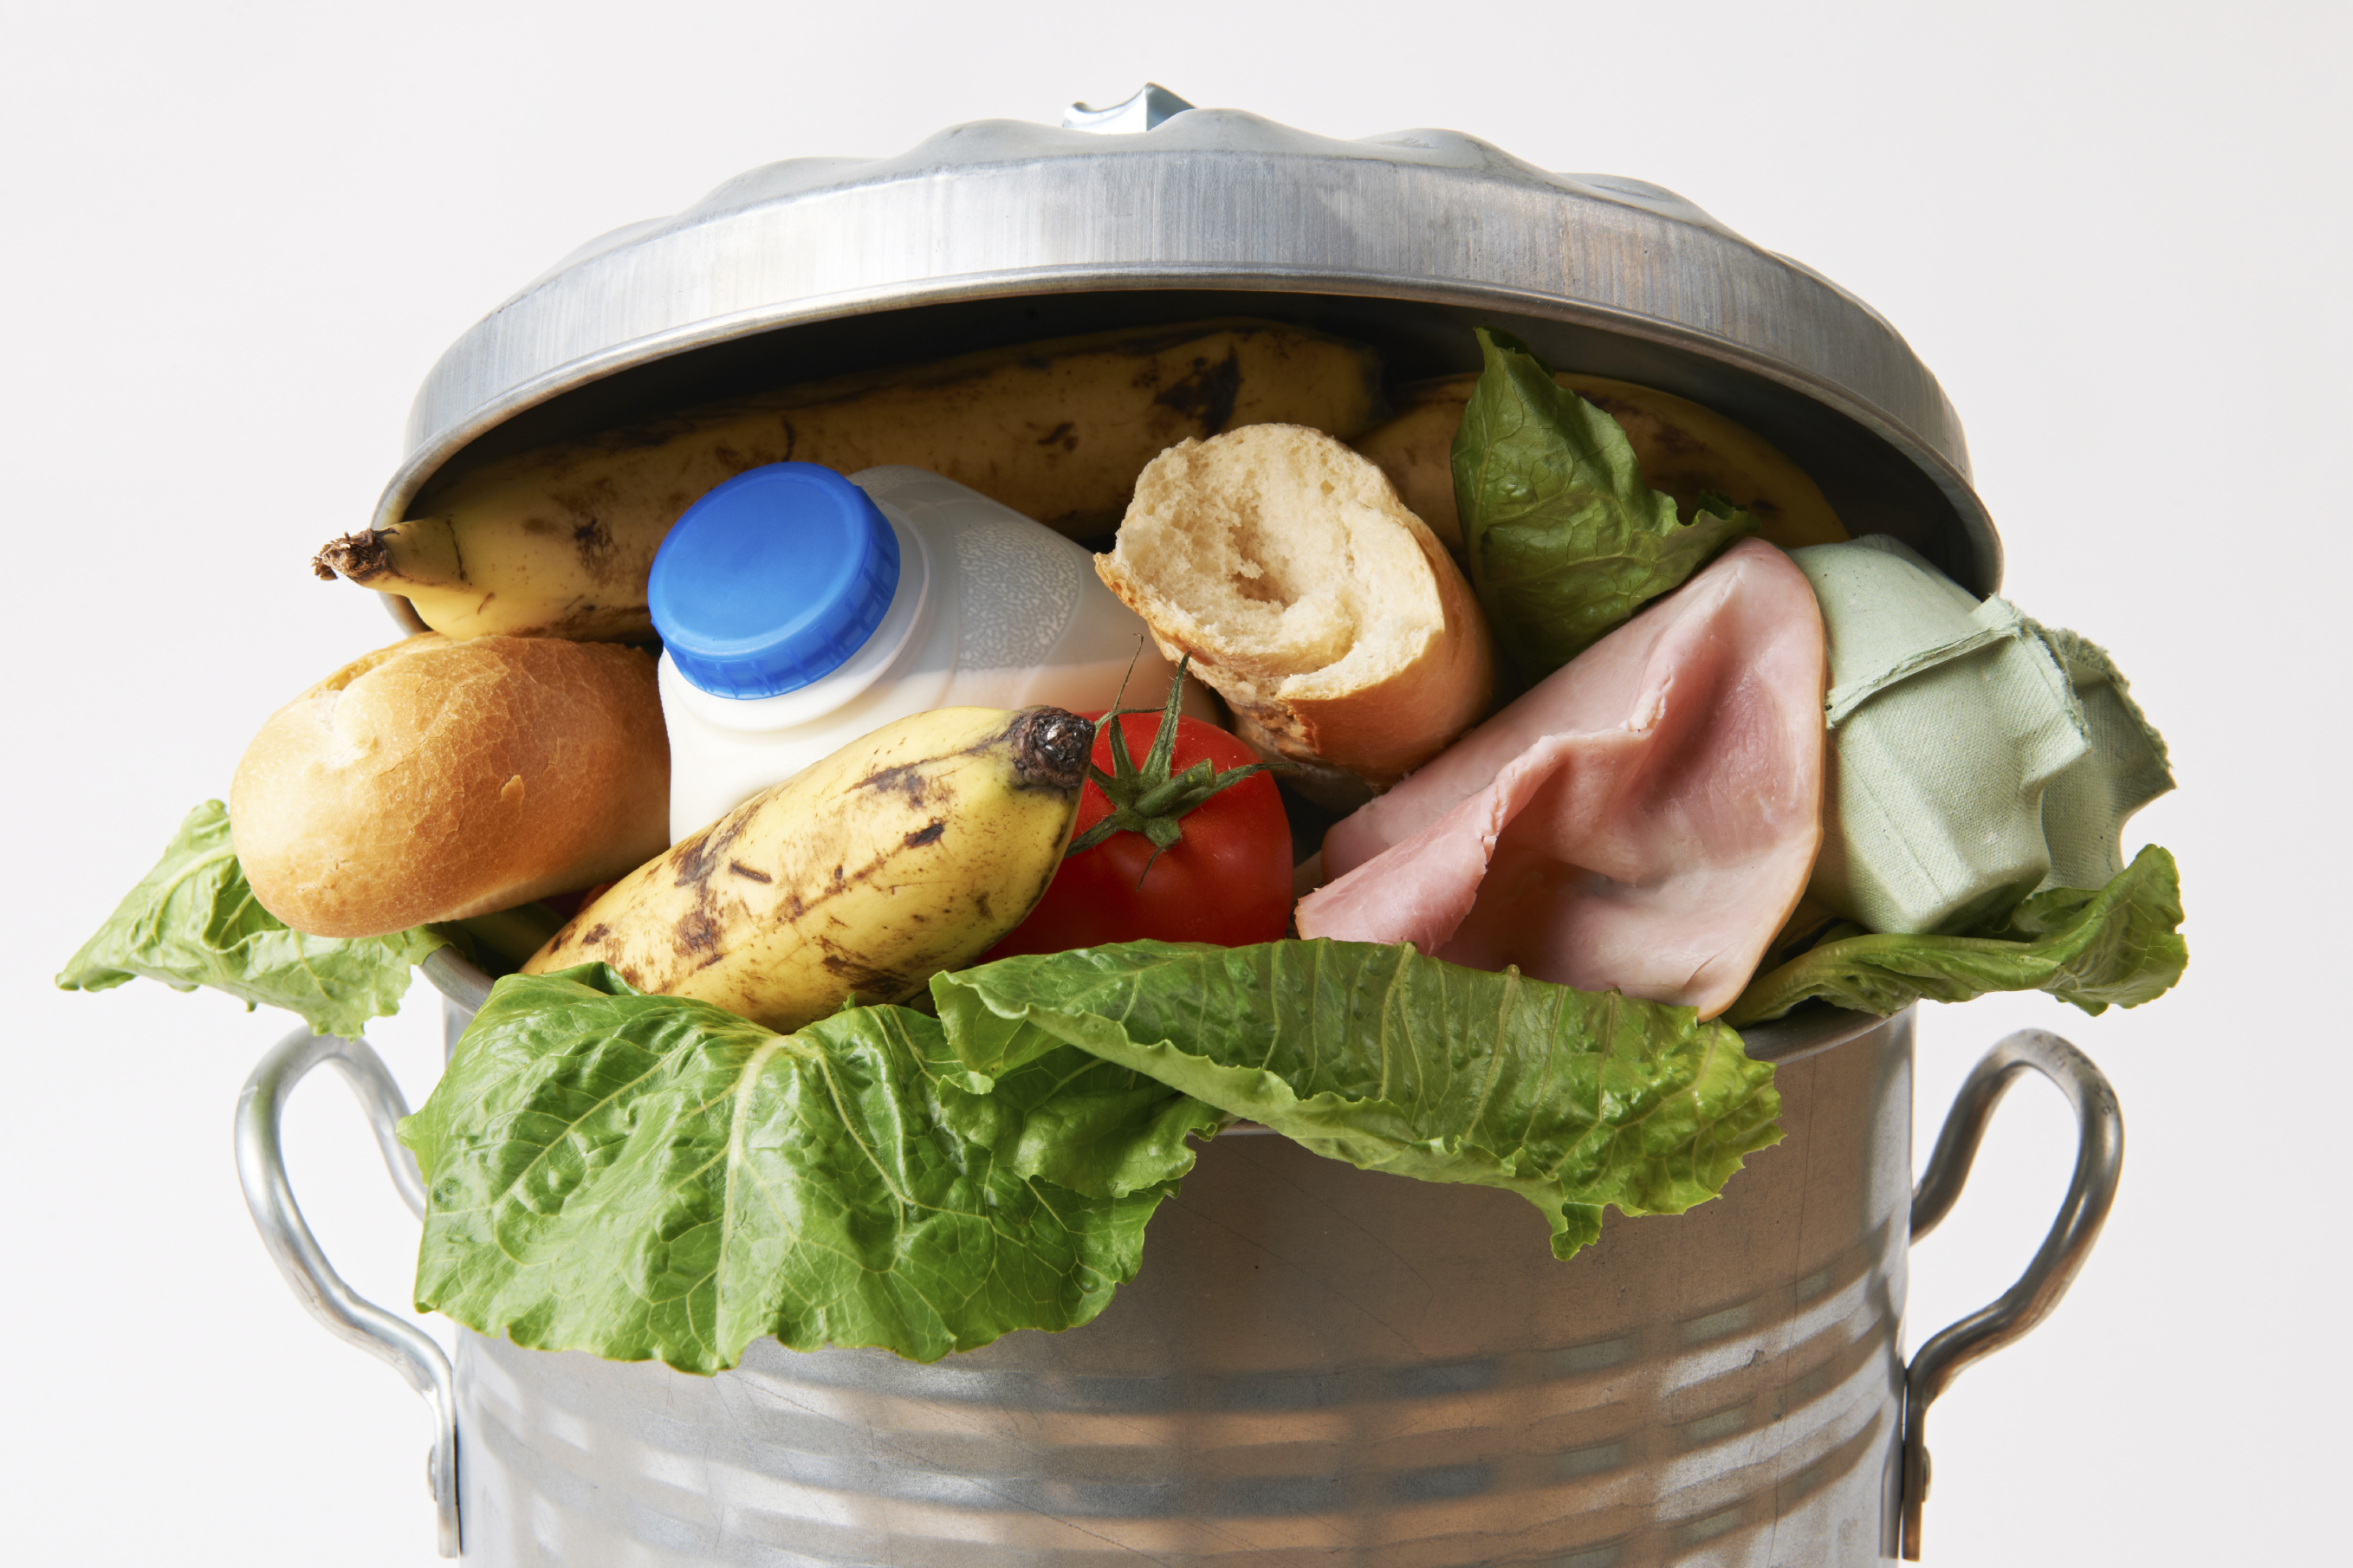 Eating out: why don't we take home leftovers?